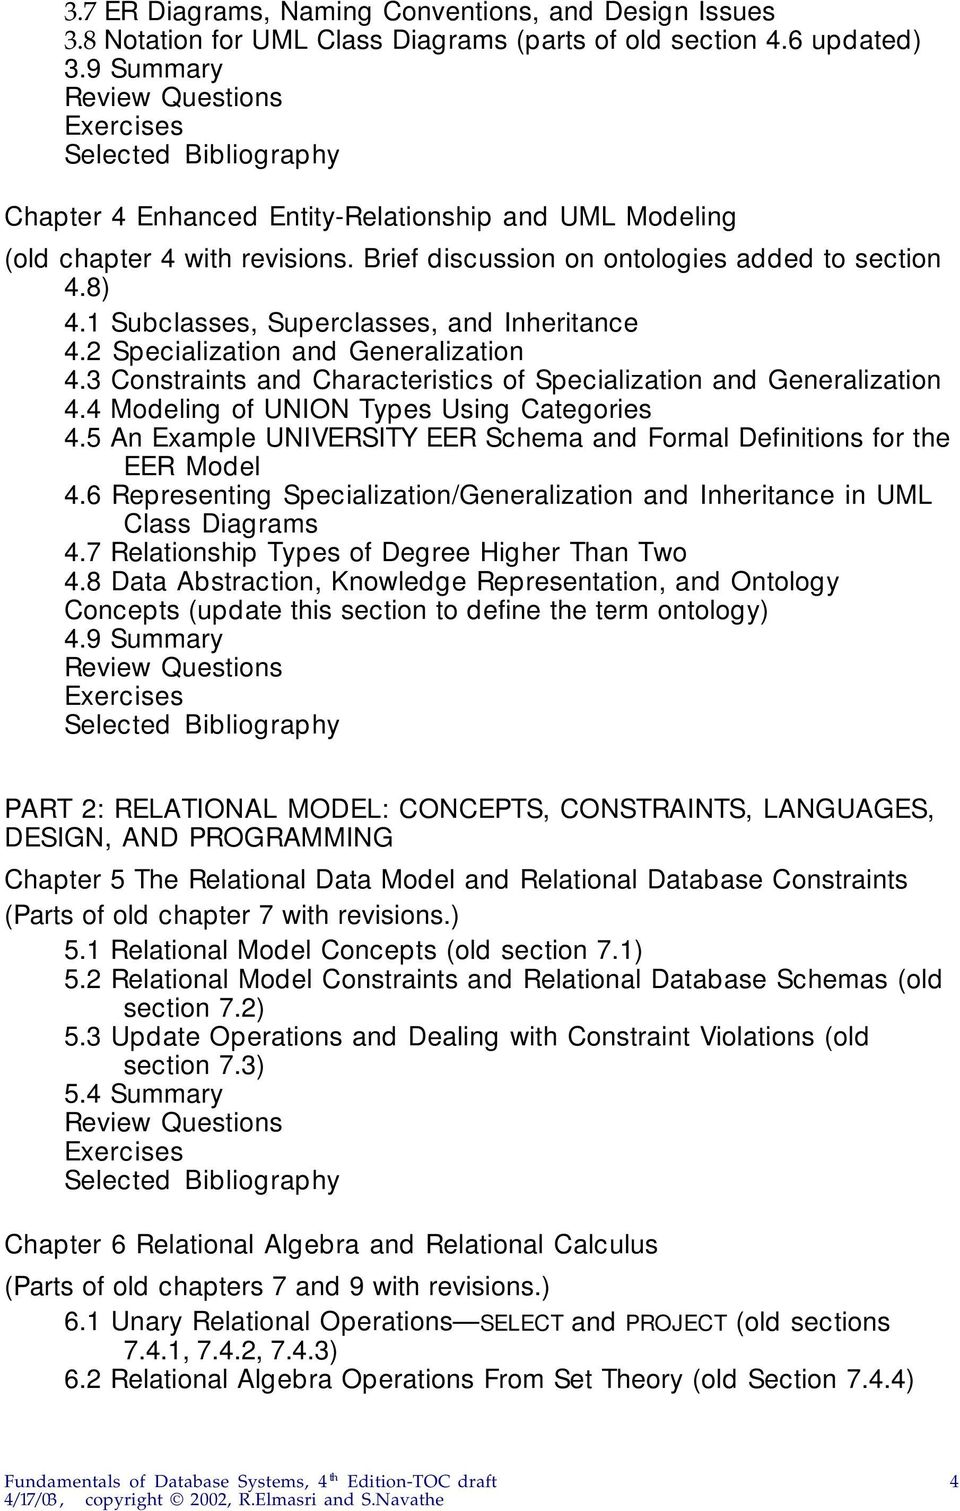 2 Specialization and Generalization 4.3 Constraints and Characteristics of  Specialization and Generalization 4.4 Modeling of UNION